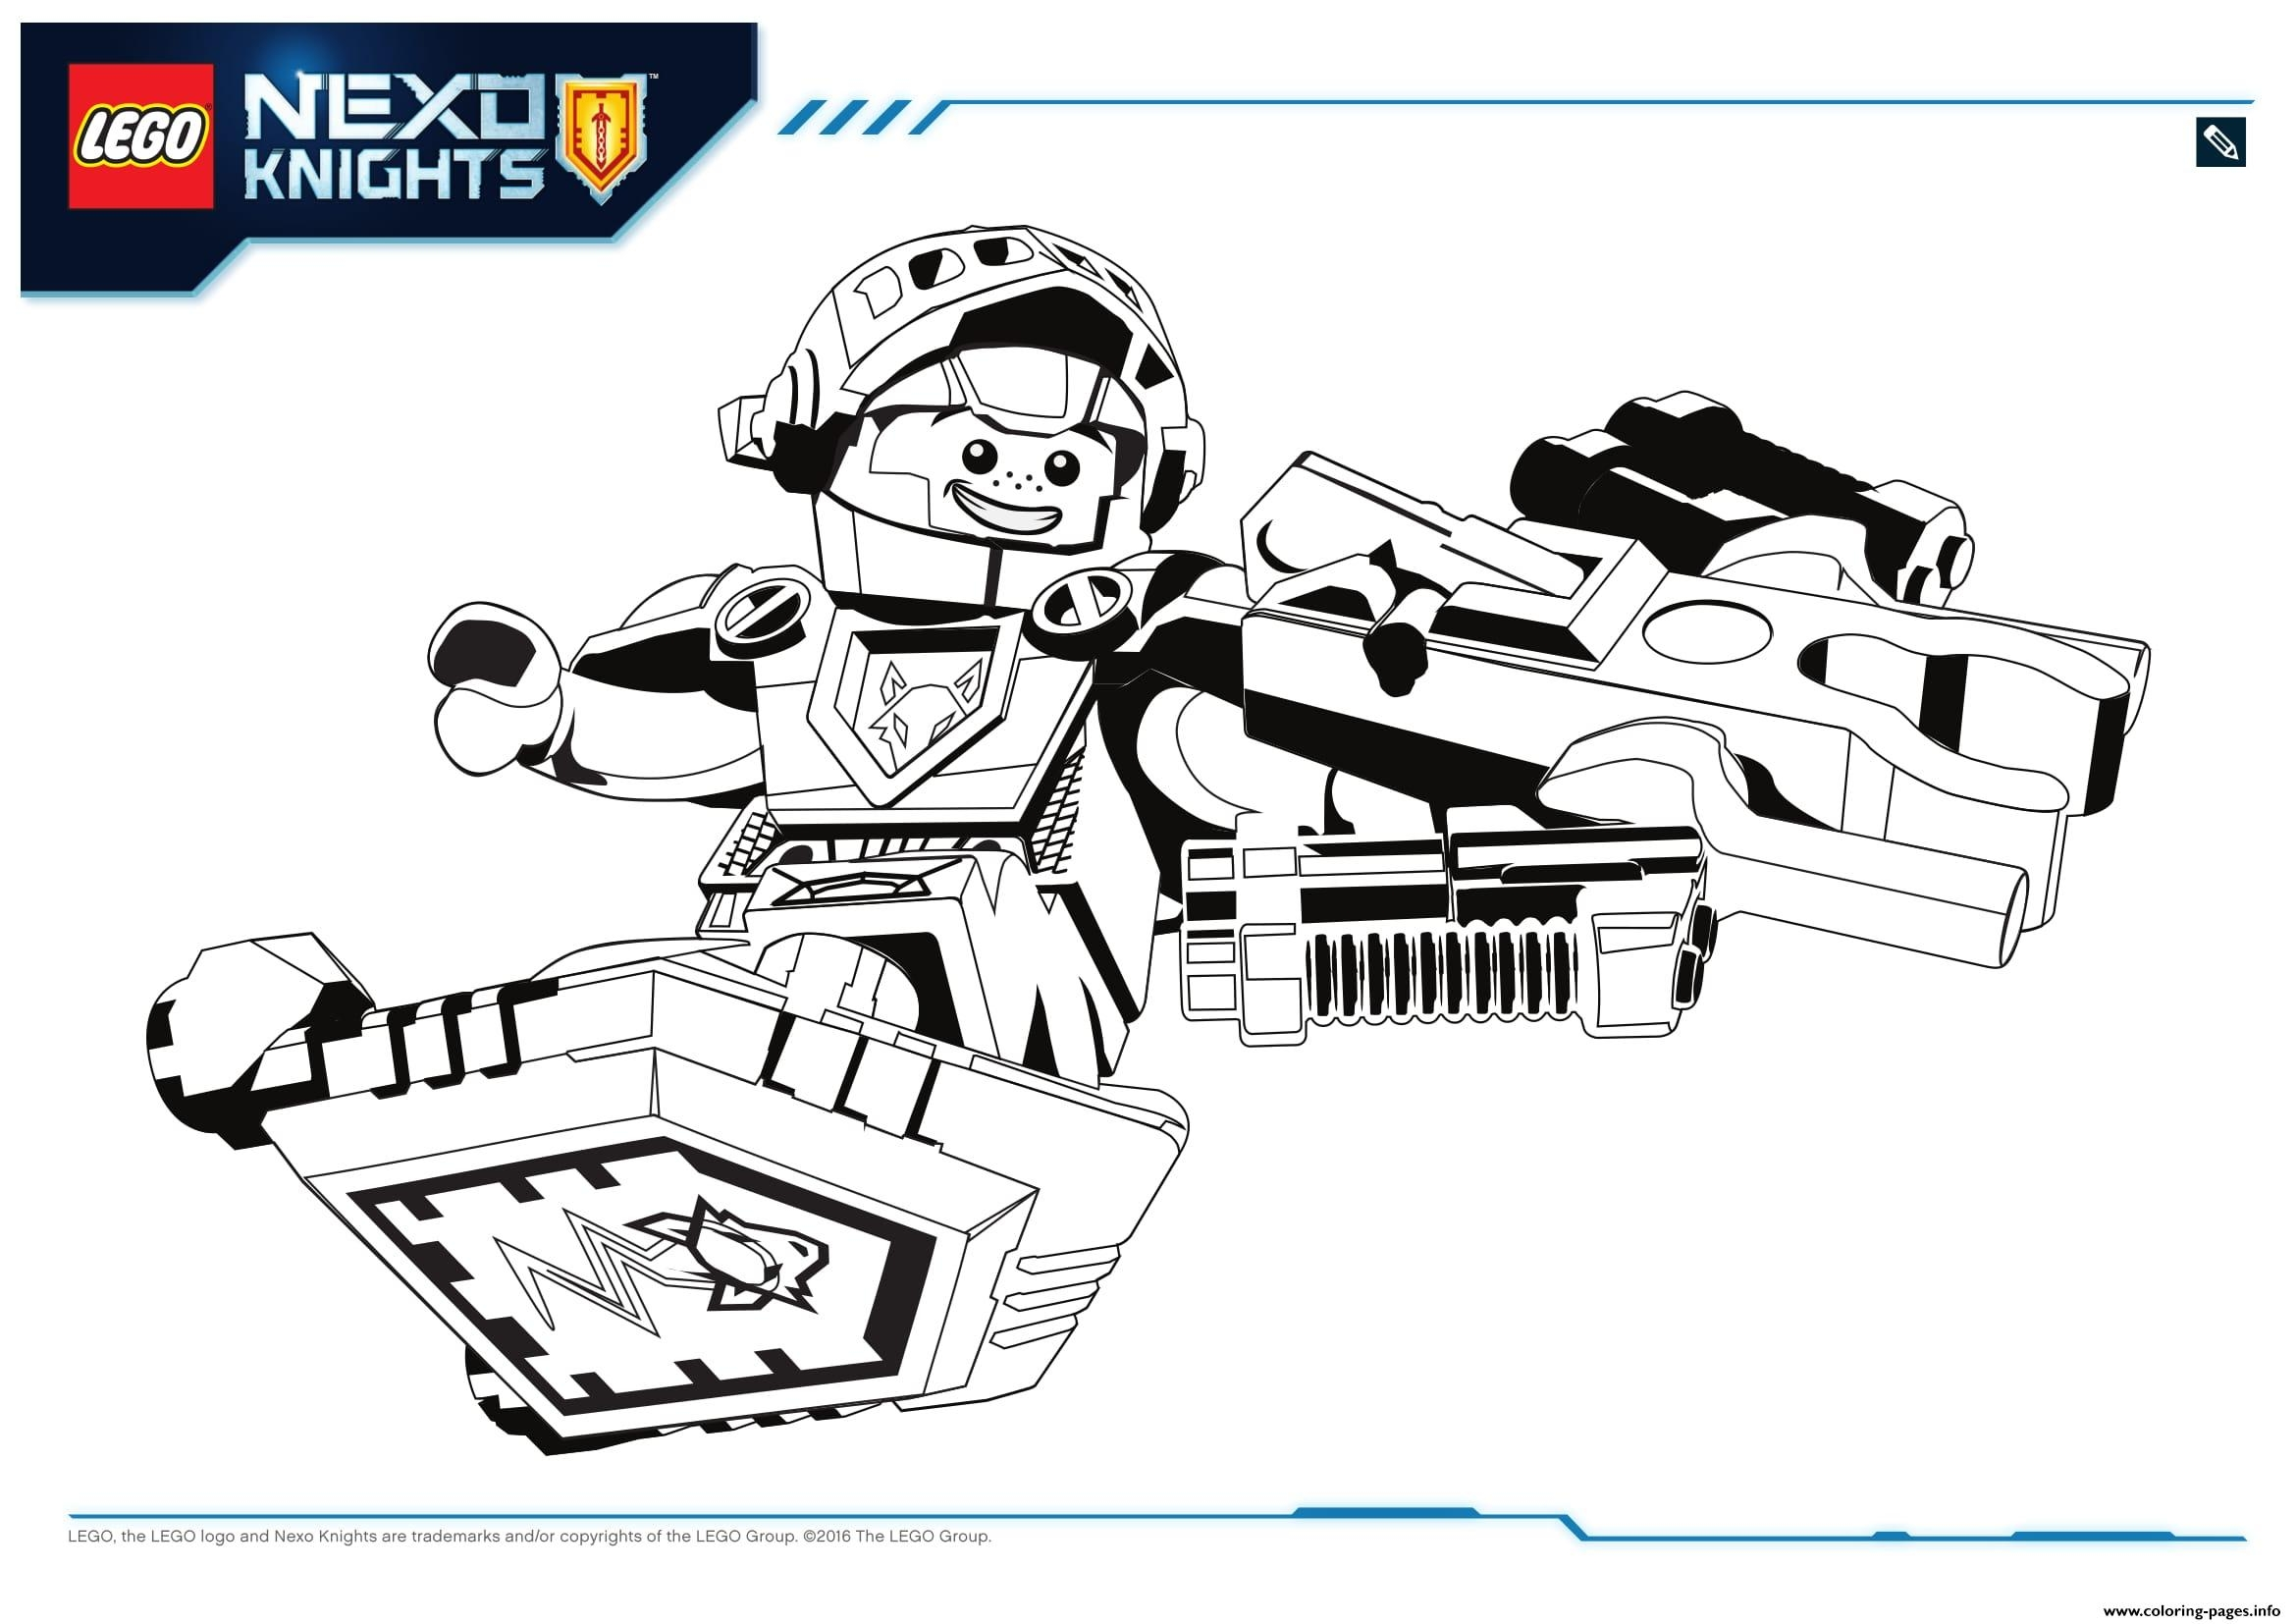 23 Nexo Knights Coloring Pages Collections | FREE COLORING PAGES